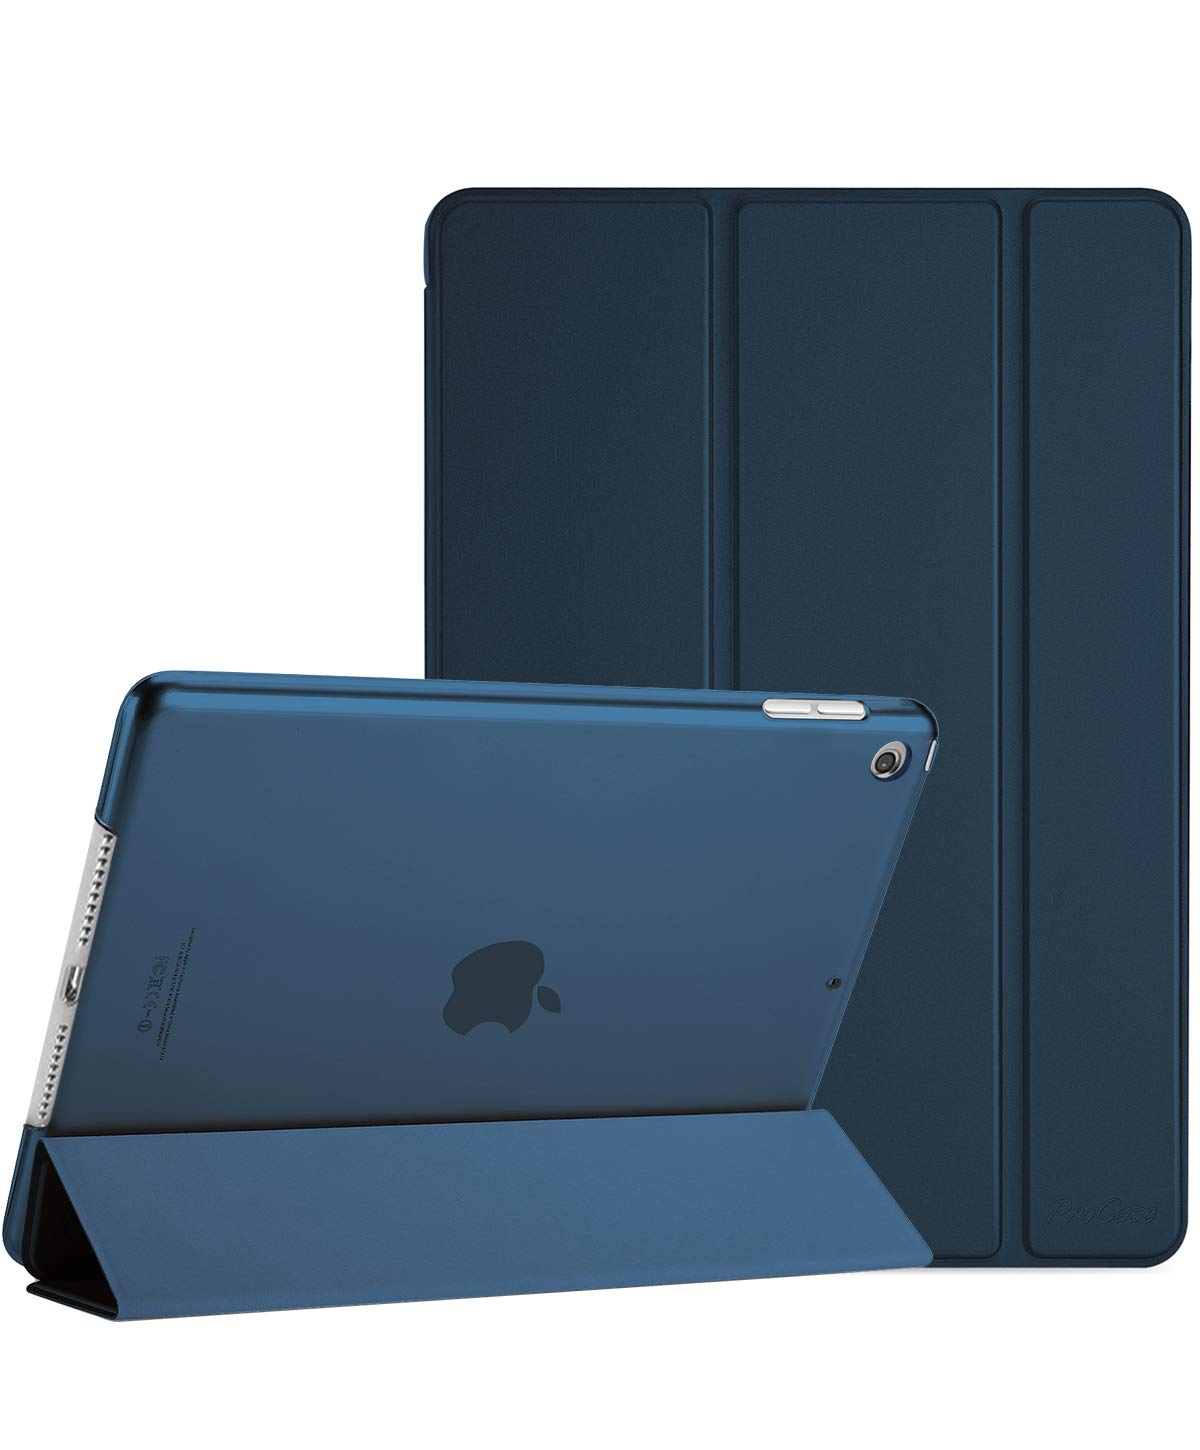 ProCase iPad Mini 5 Case 5th Generation iPad Mini 2019, Slim Lightweight Stand Protective Case Translucent Frosted Shell Smart Cover for 2019 Apple iPad Mini 5 79 Inch –Navy